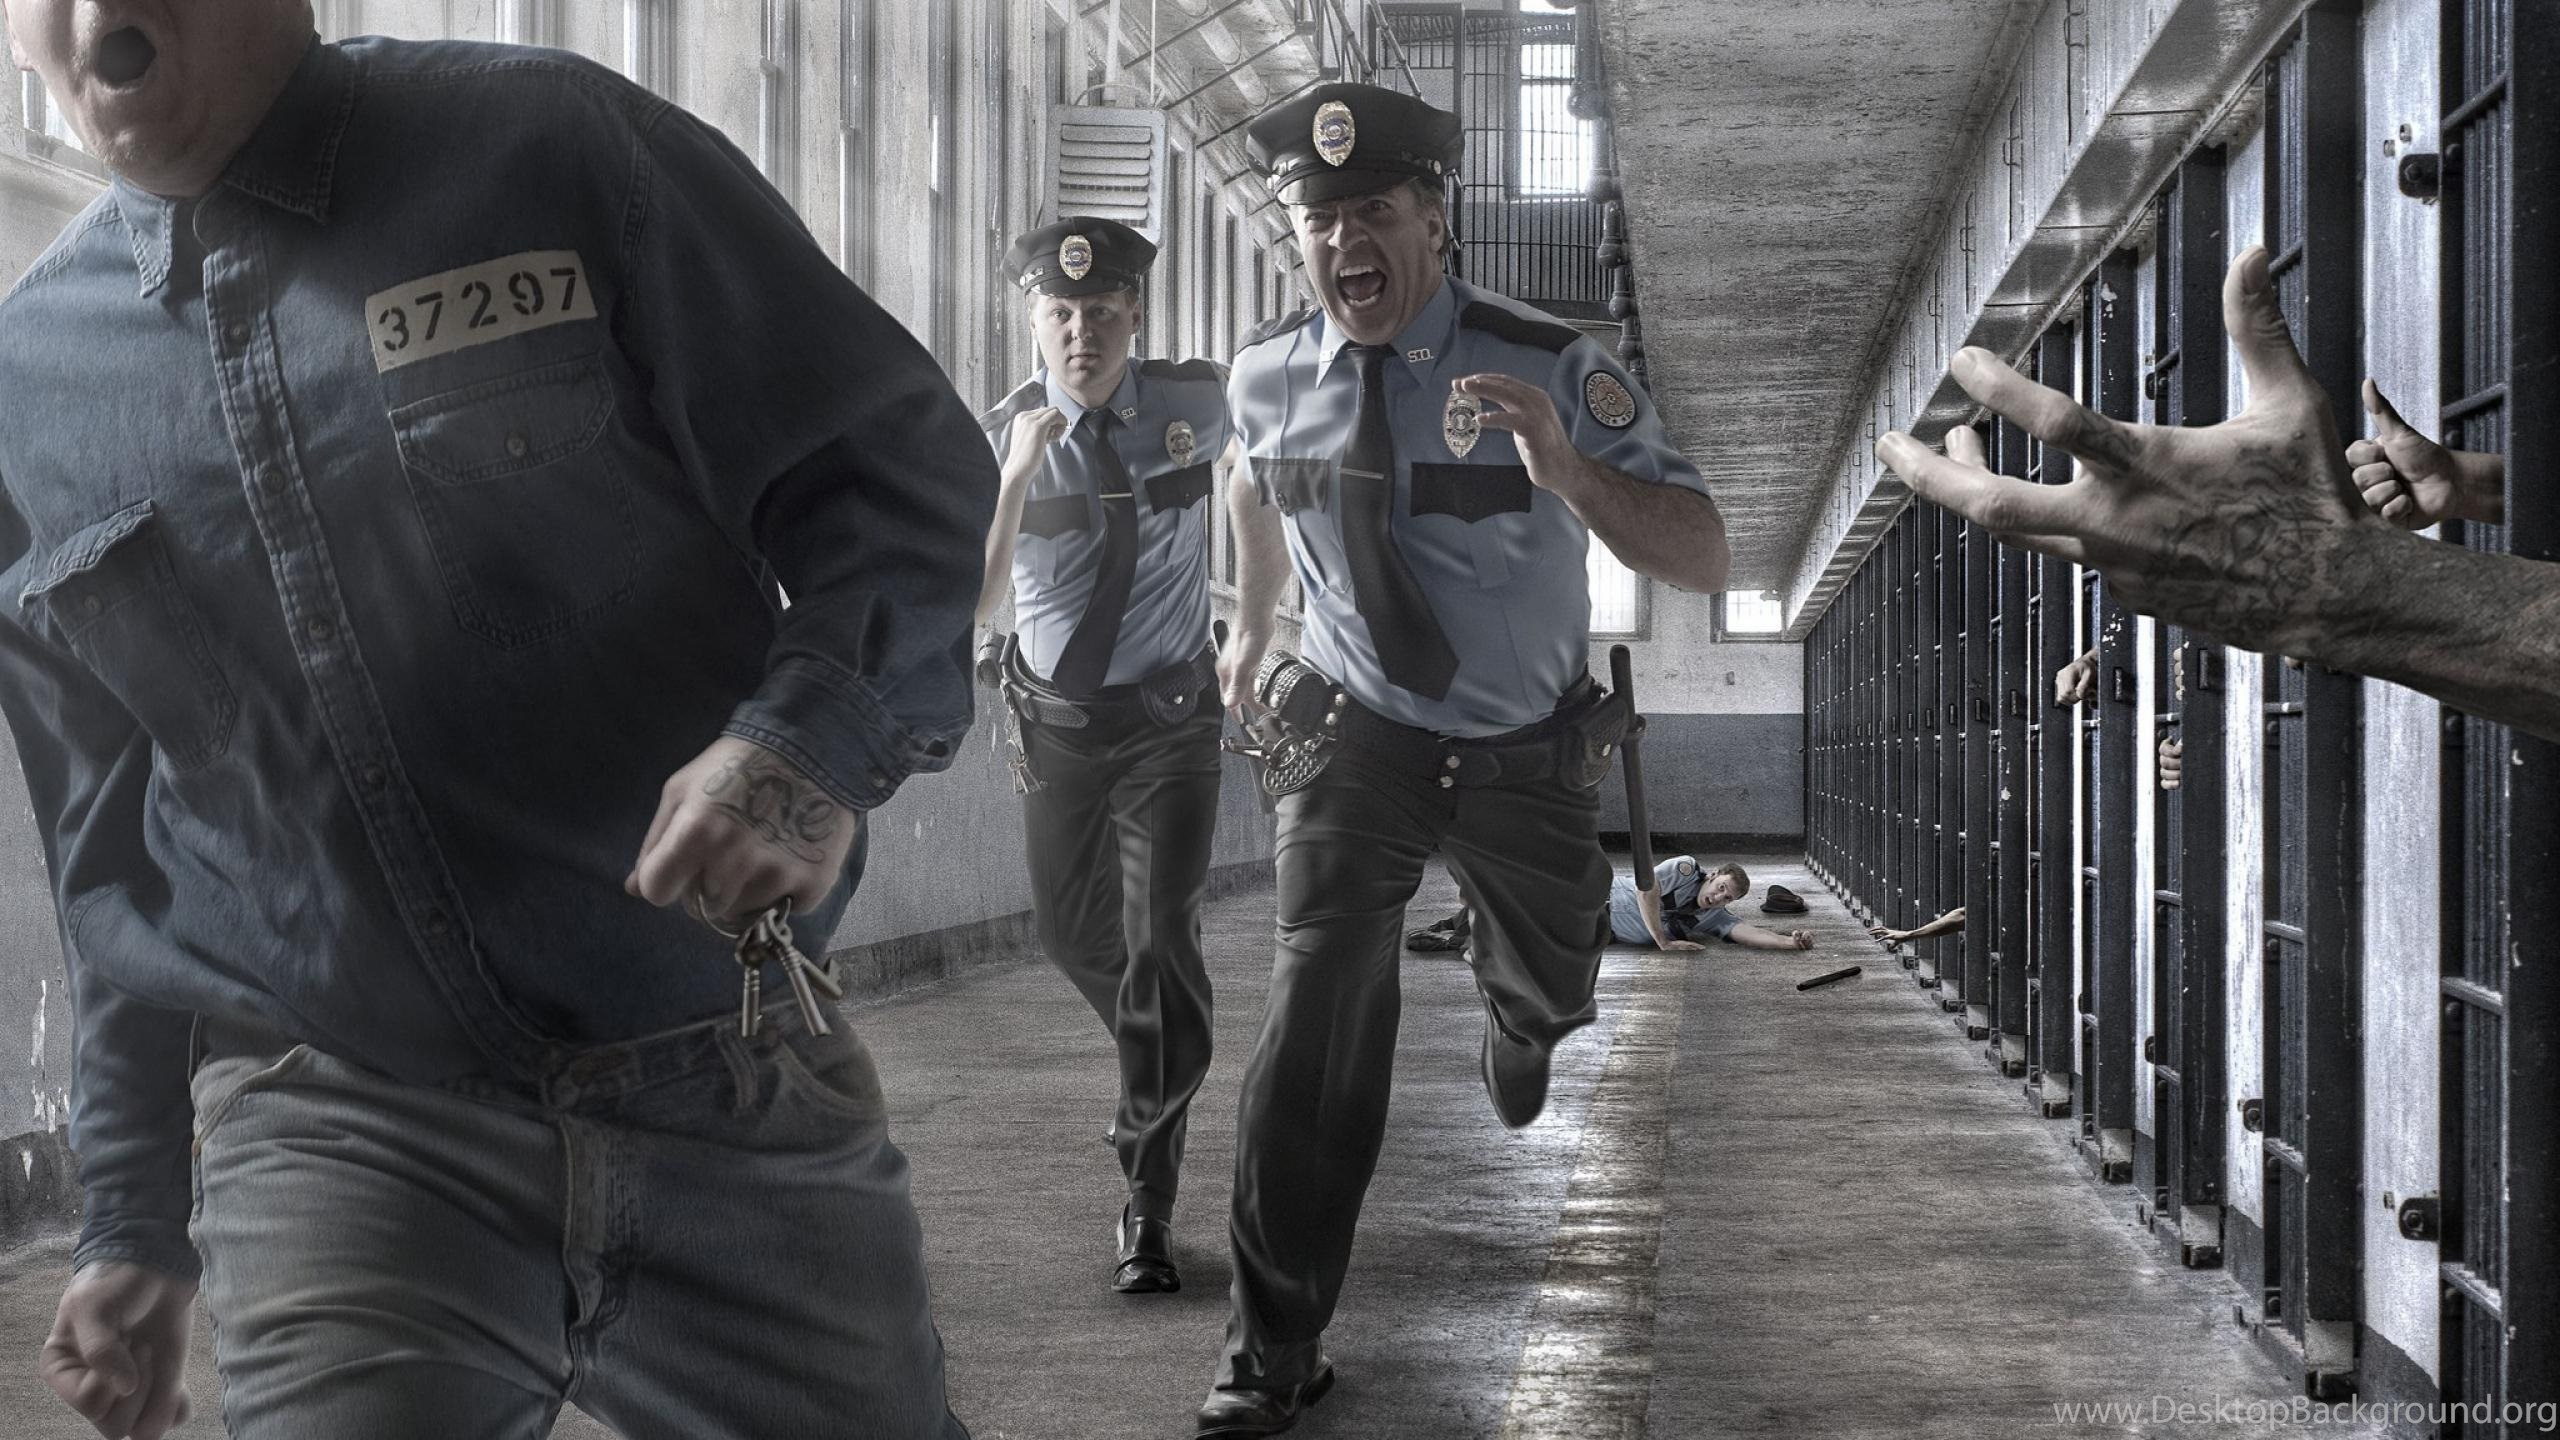 Download Wallpapers A Police Officer In Prison 2560 X 1600